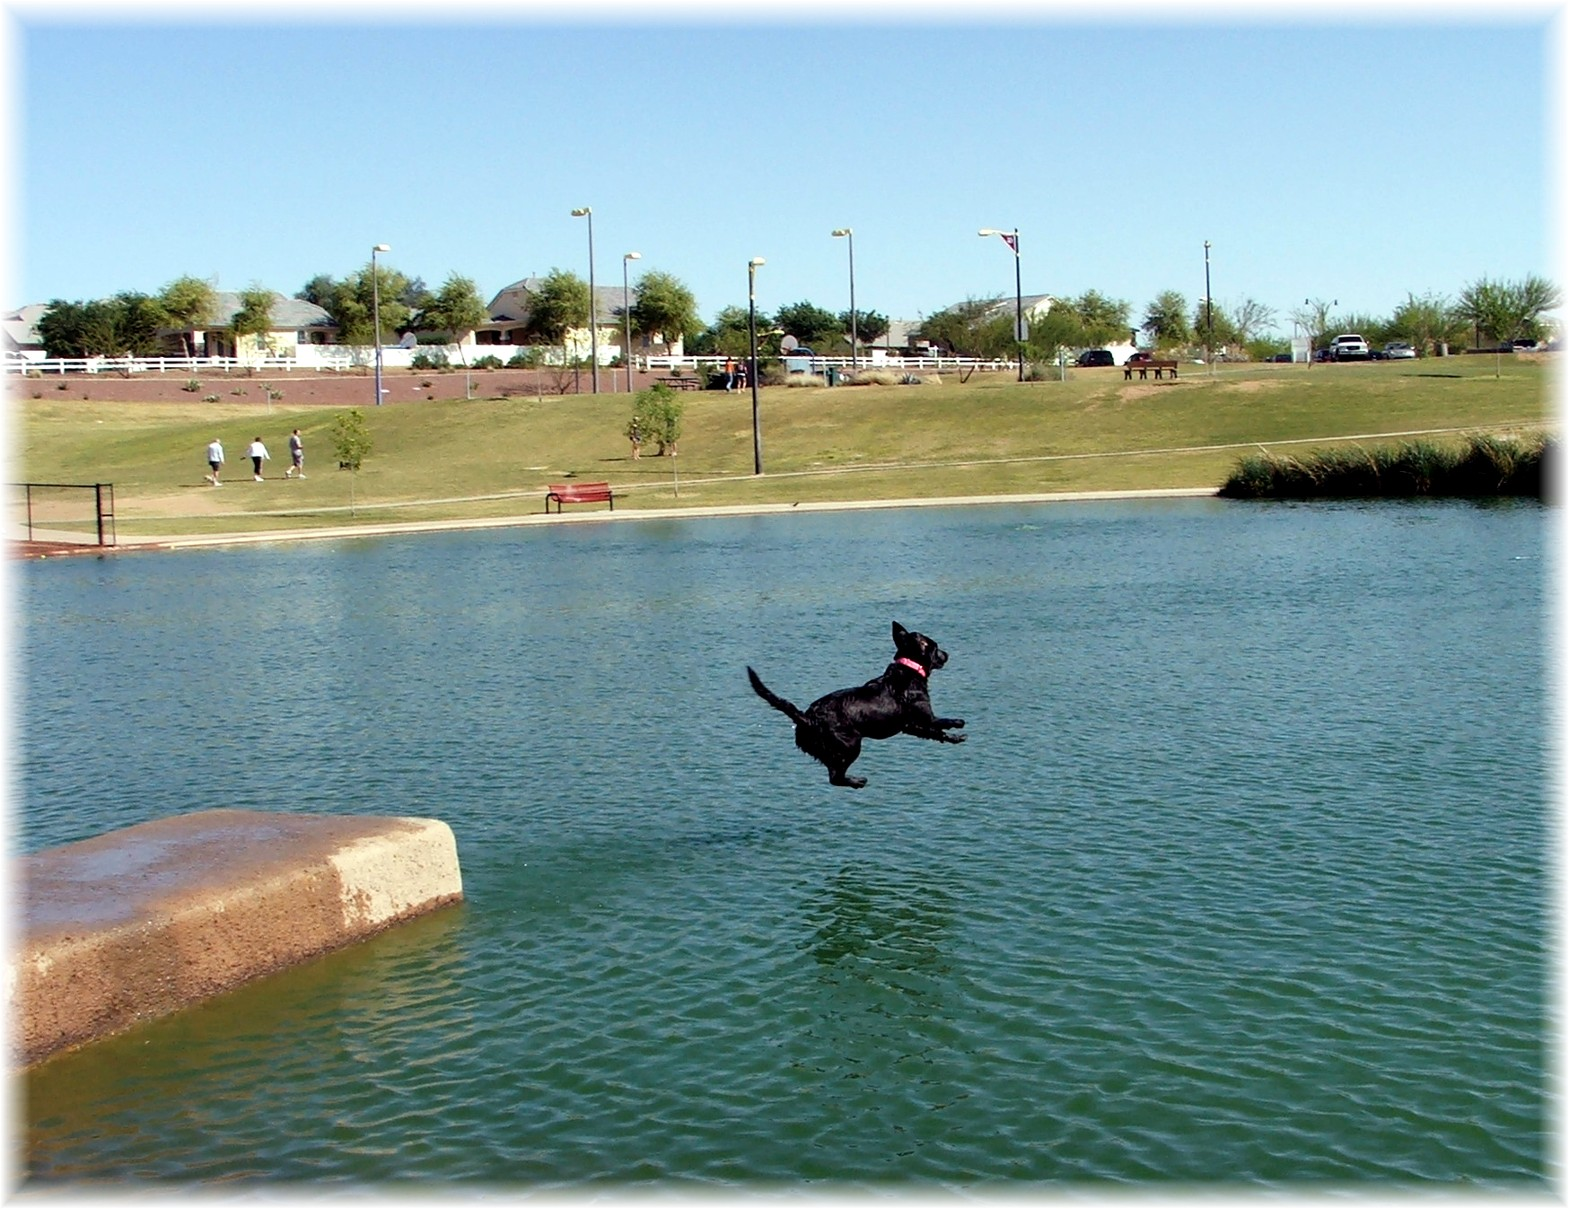 Gilberts Cosmo Dog Park features waterfront activities